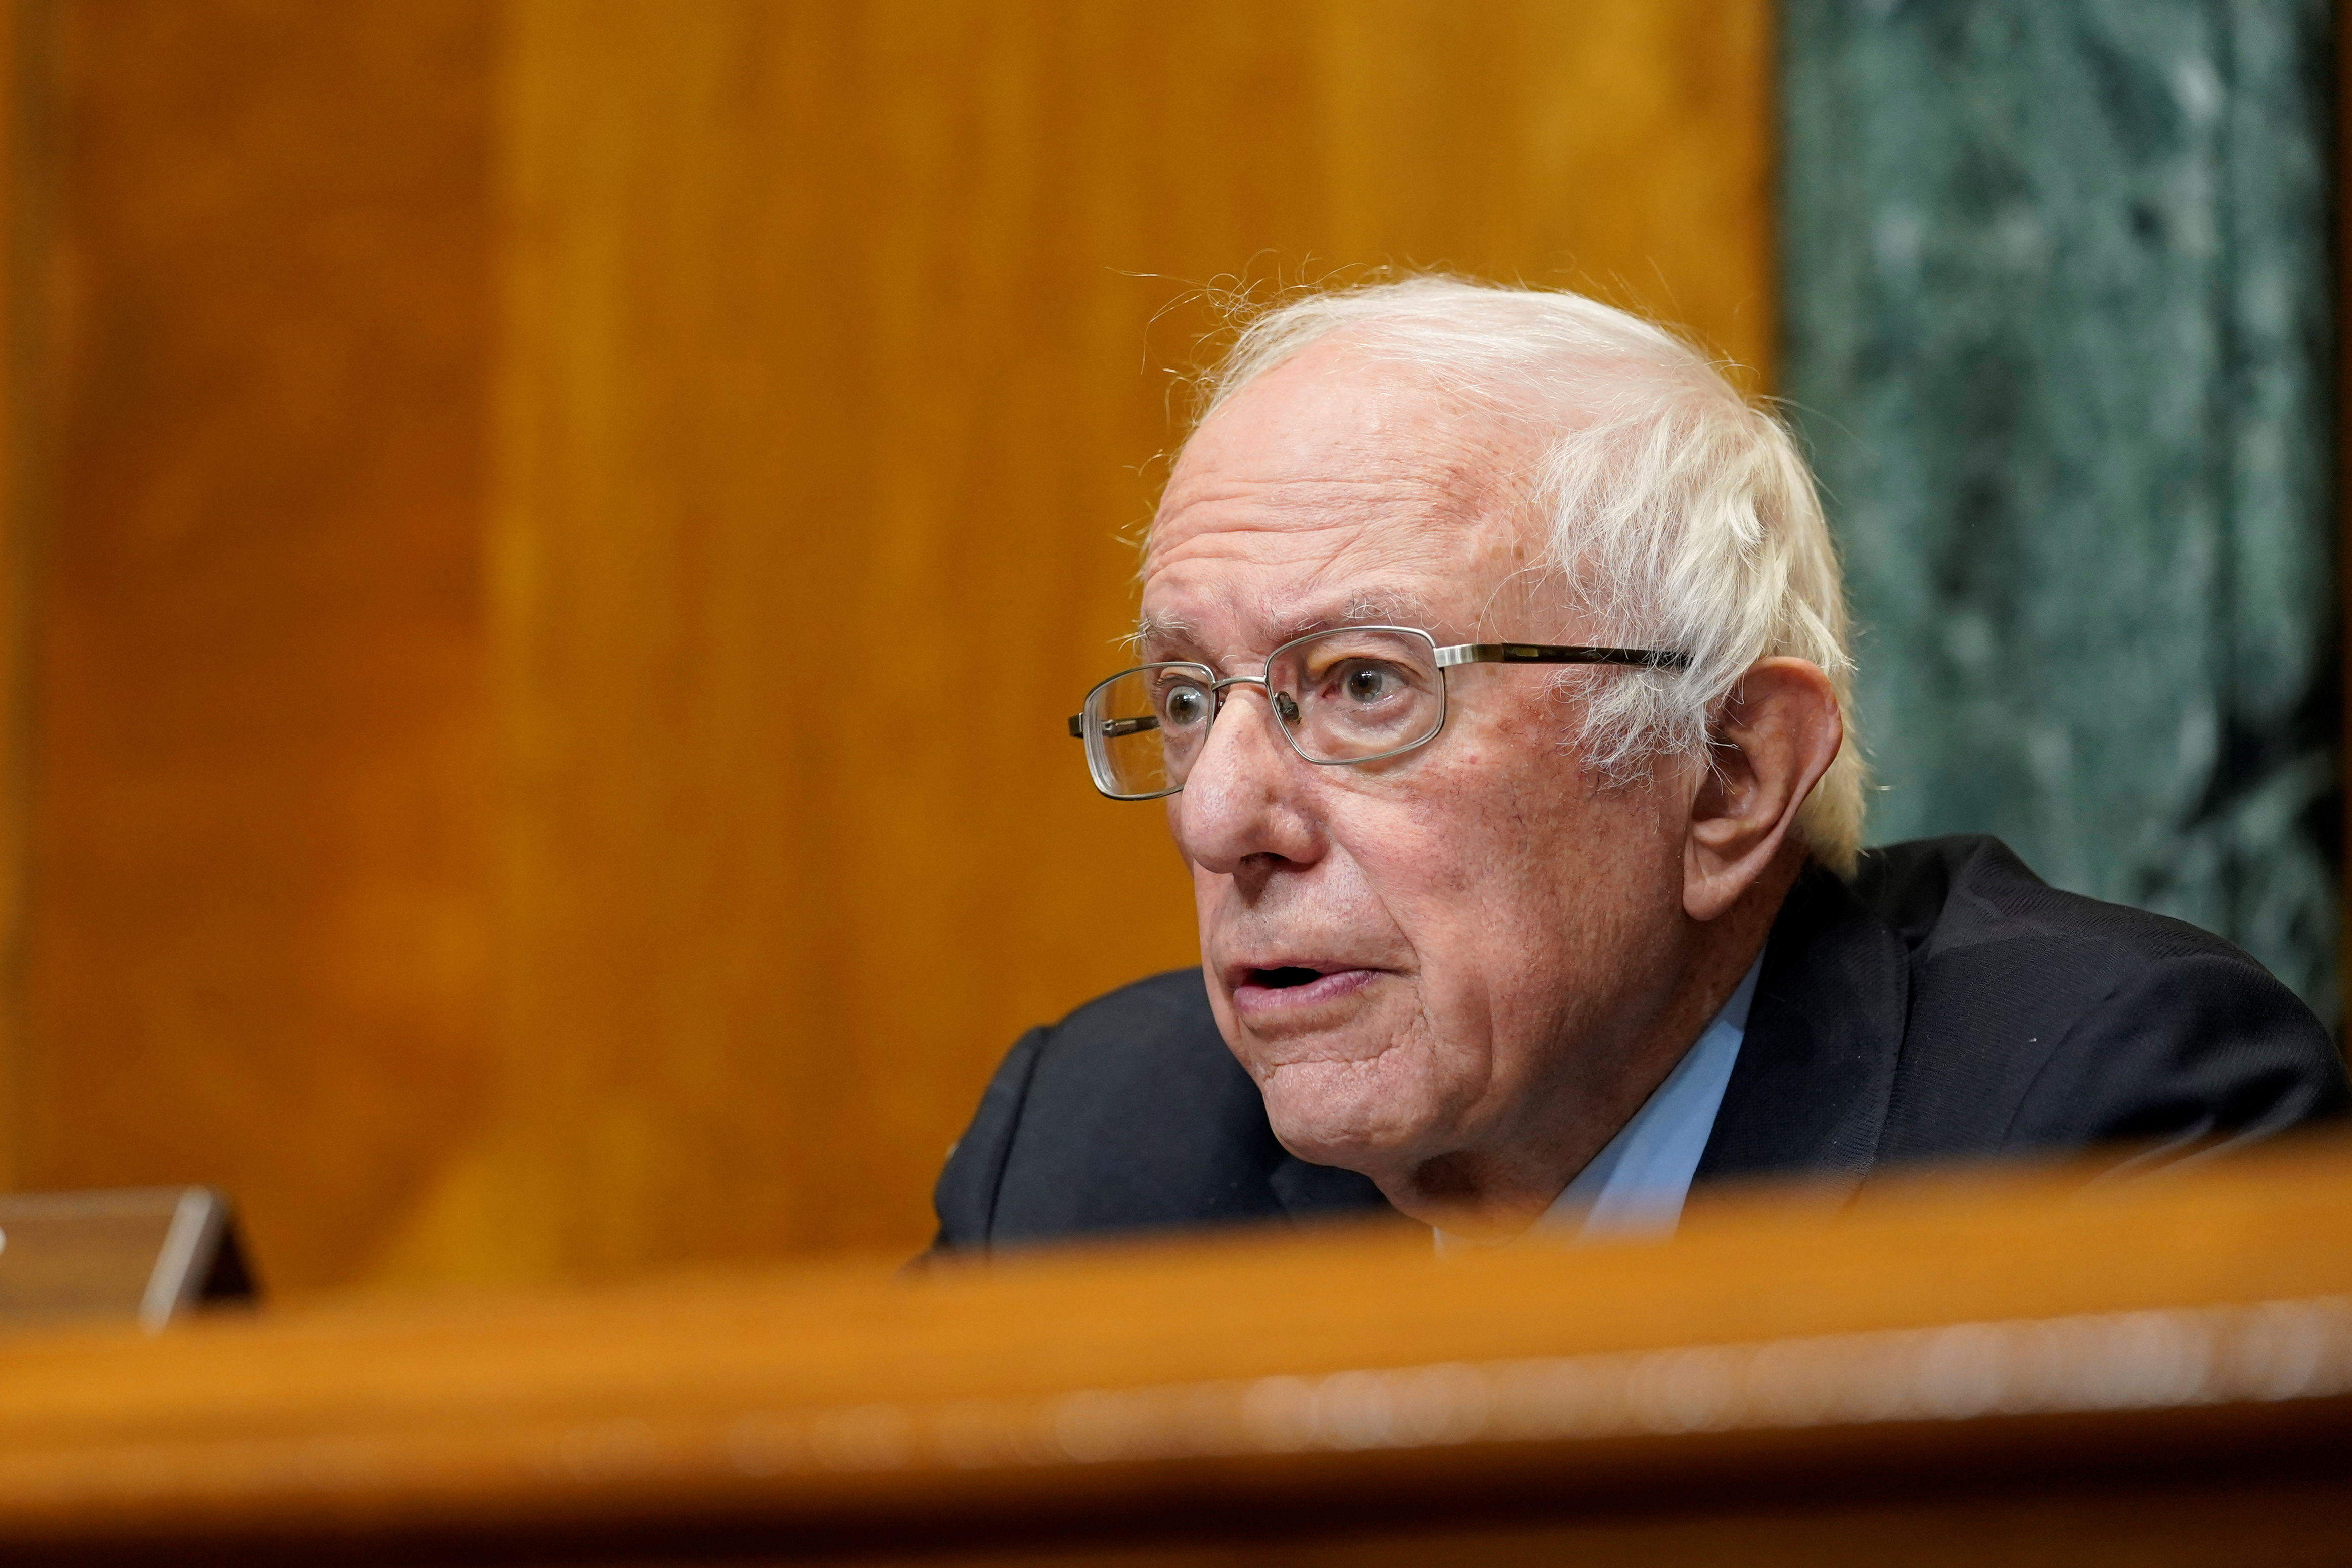 Senate Budget Committee Chairman Sen. Bernie Sanders, I-Vt., speaks during a hearing examining wages at large profitable corporations on Capitol Hill in Washington, U.S. February 25, 2021. Susan Walsh/Pool via REUTERS